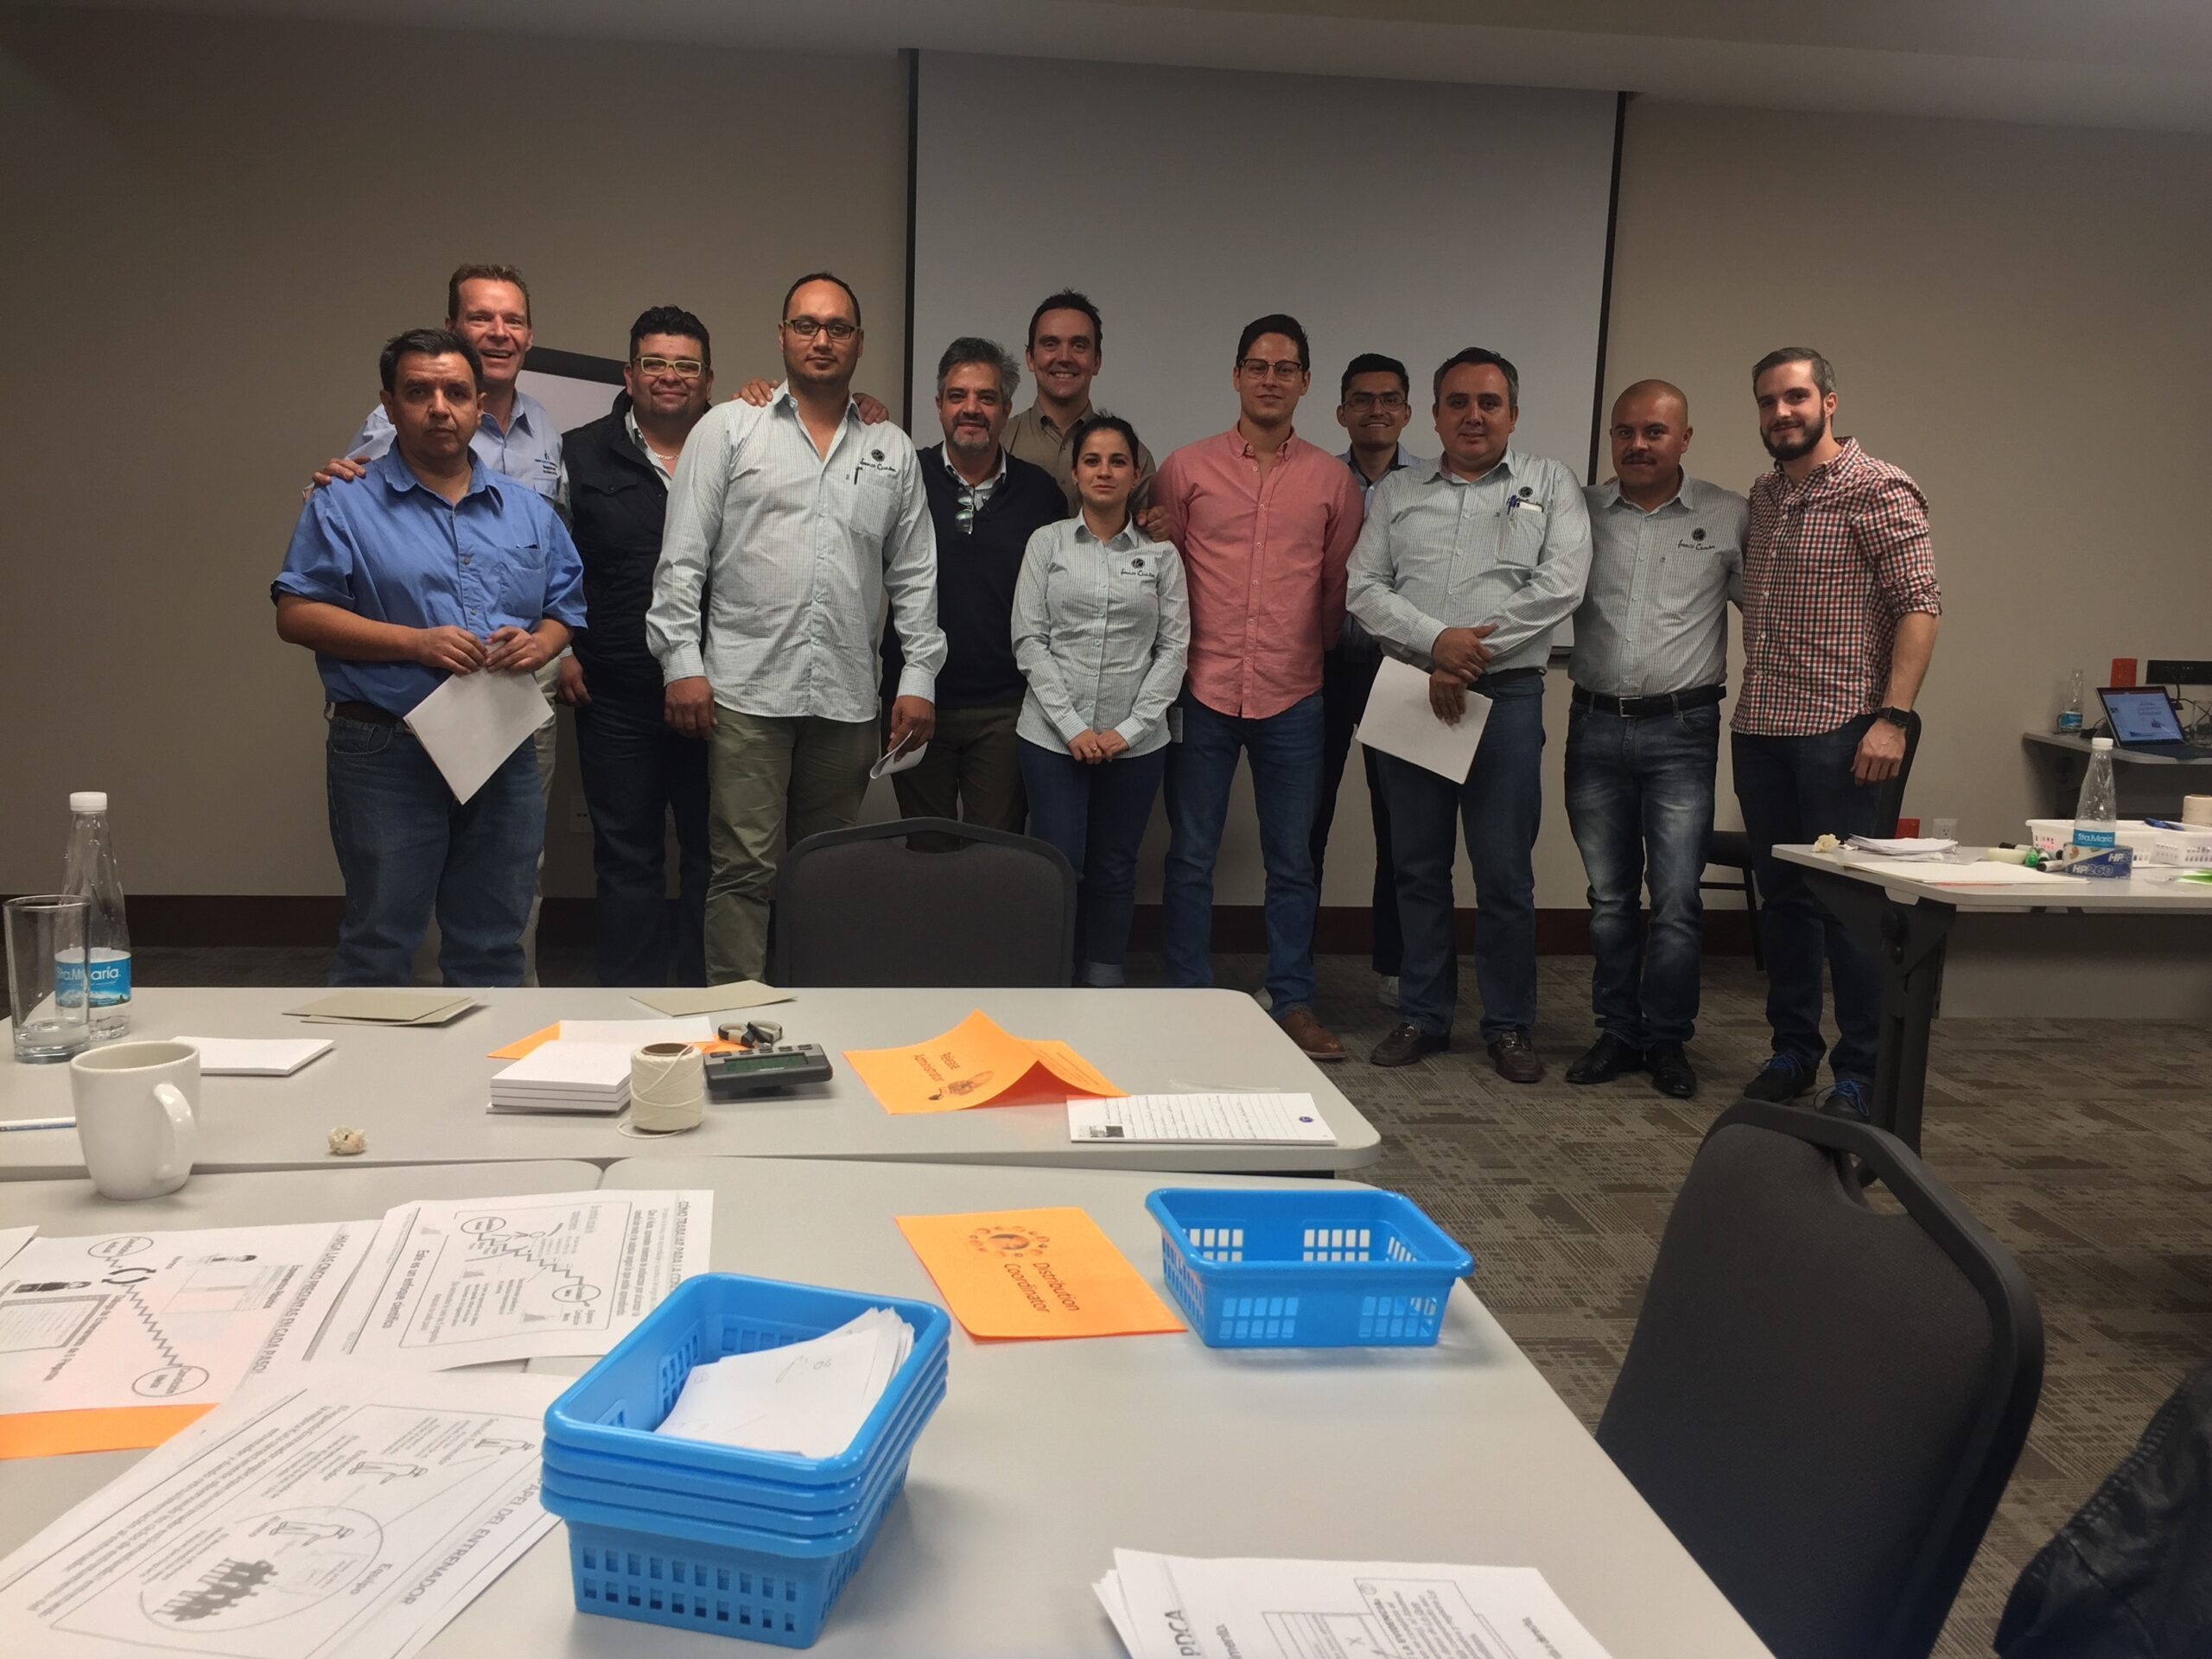 Lean, Mexico Kata workshop from Oct 2017